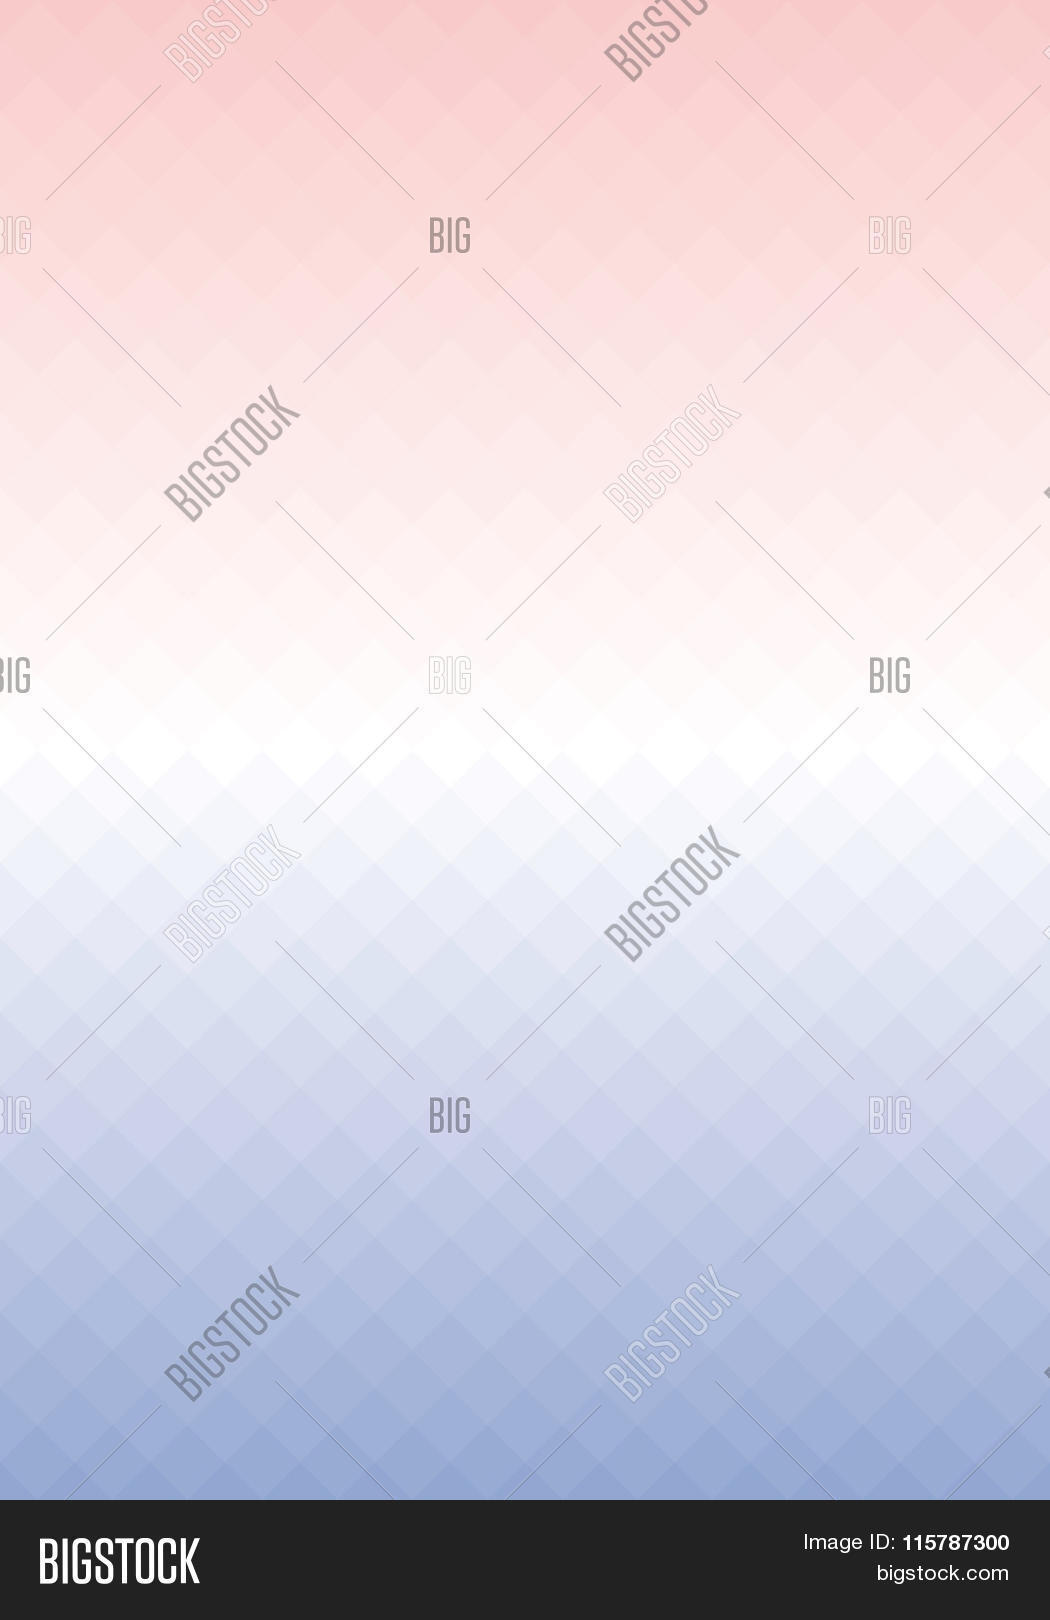 vector cover page background in rose quartz serenity colors of vector cover page background in rose quartz serenity colors of the year 2016